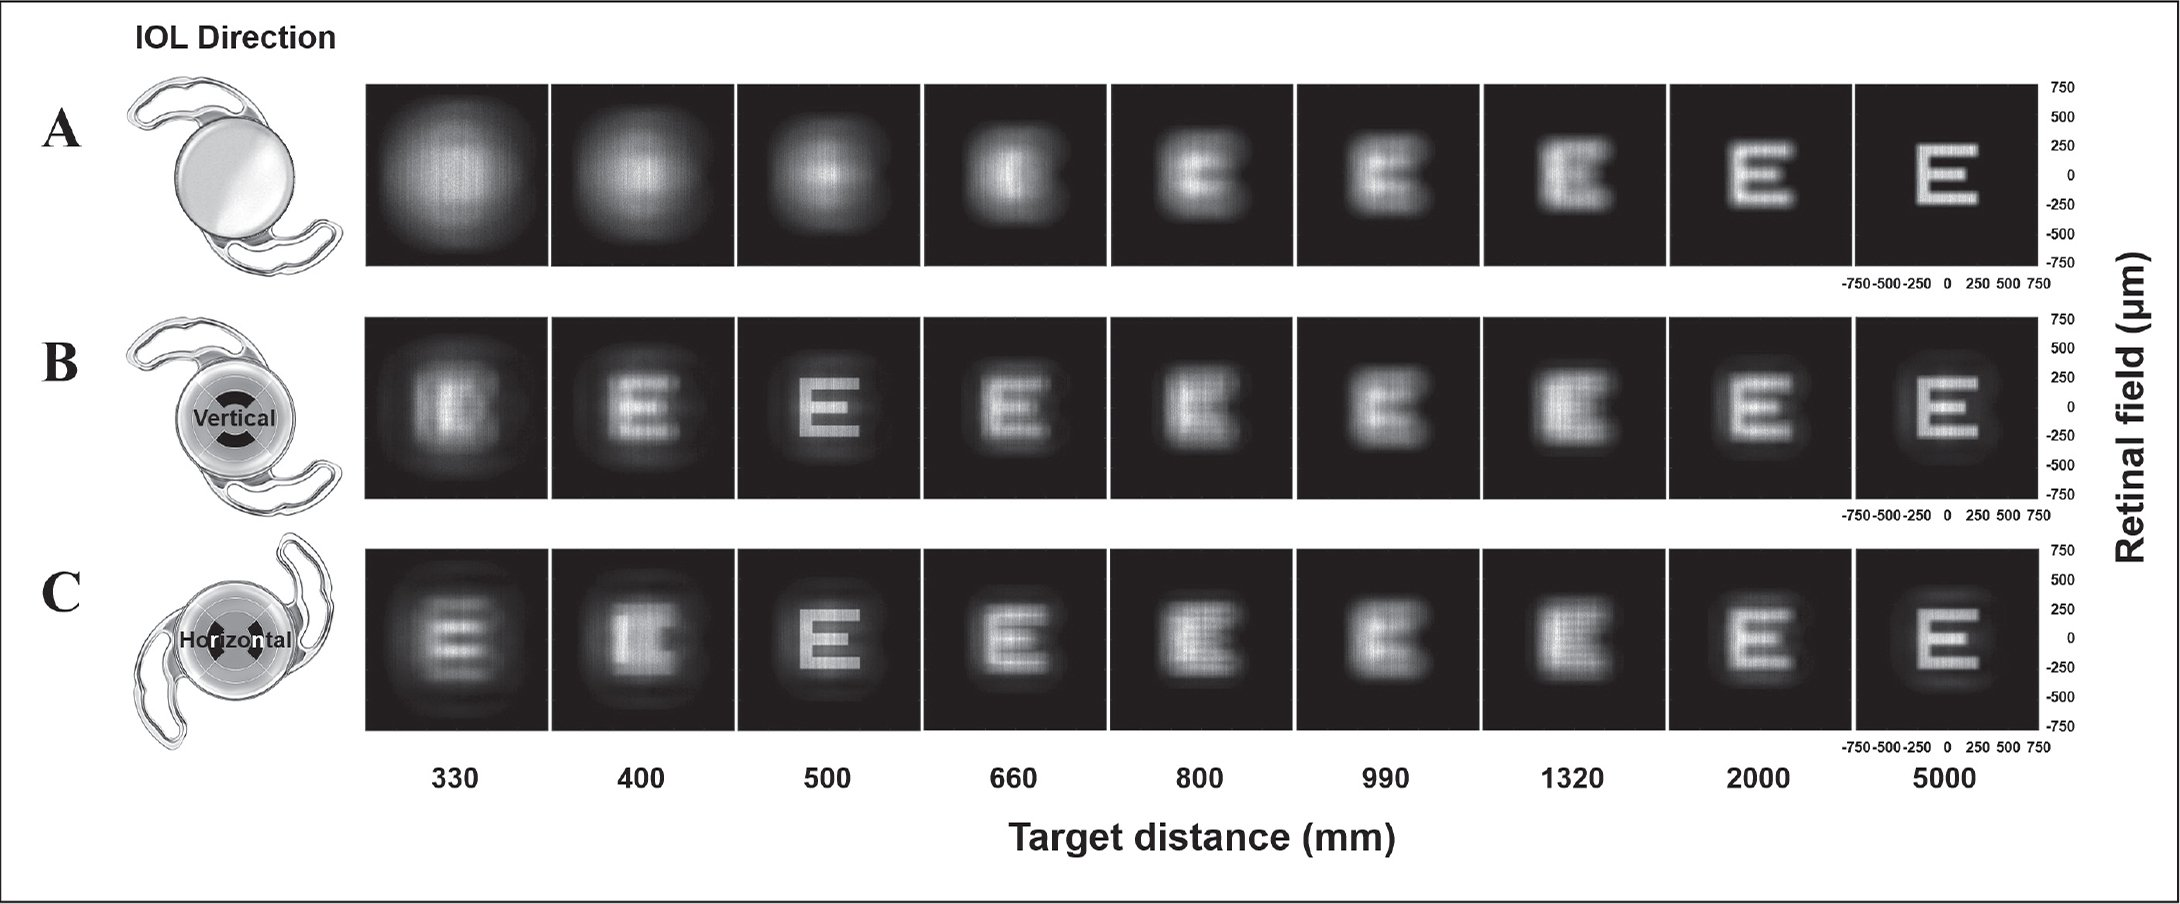 Retinal images of pseudophakia using a monofocal or Precizon Presbyopic intraocular lens (IOL) (Ophtec BV) in integrated ray-tracing simulations (using Lambertian source E targets with various target distances and two IOL implantation directions). (A) Monofocal IOL. (B) Precizon Presbyopic IOL with vertically oriented first near segment. (C) Precizon Presbyopic IOL with horizontally oriented first near segment.